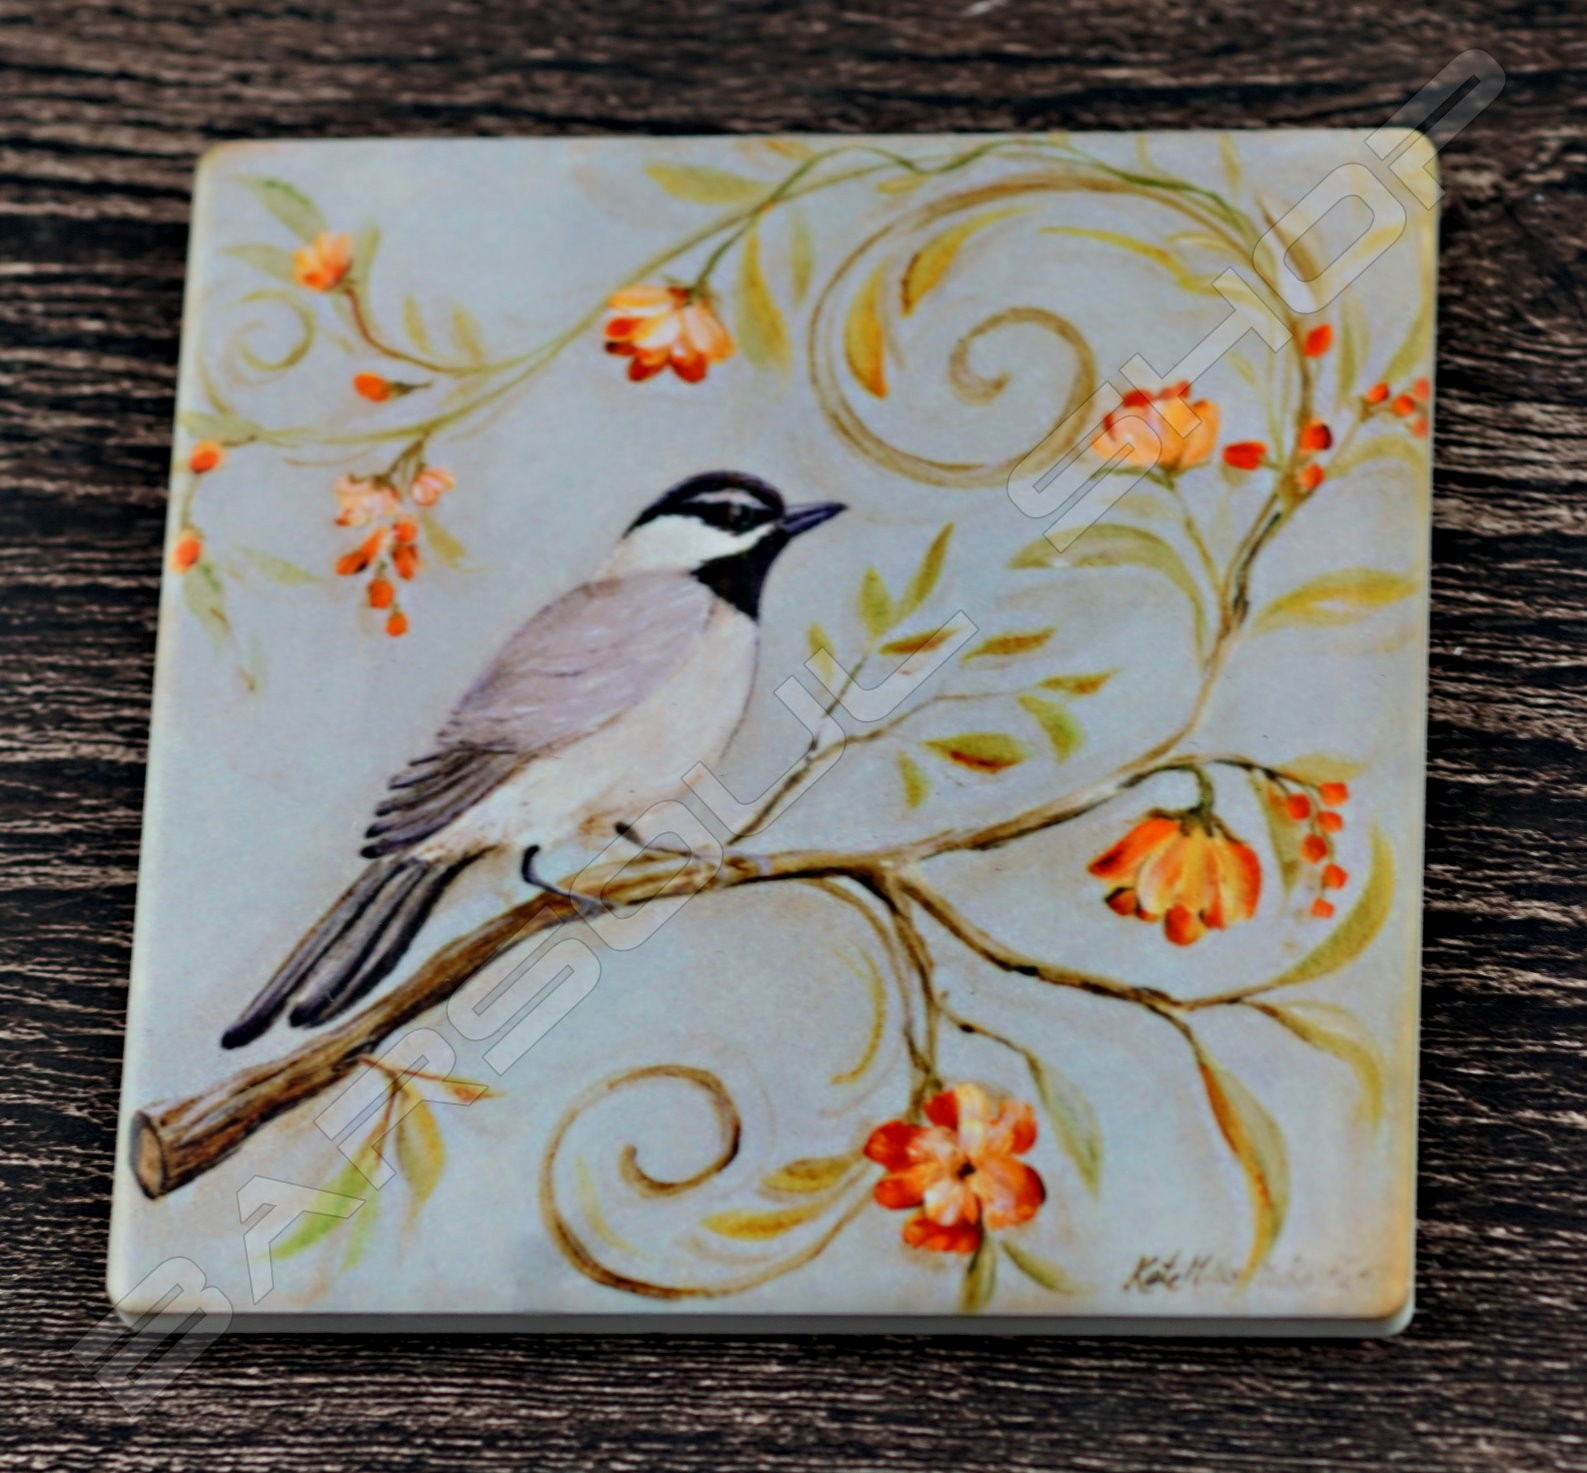 方形陶瓷杯墊(E) Square ceramics coaster